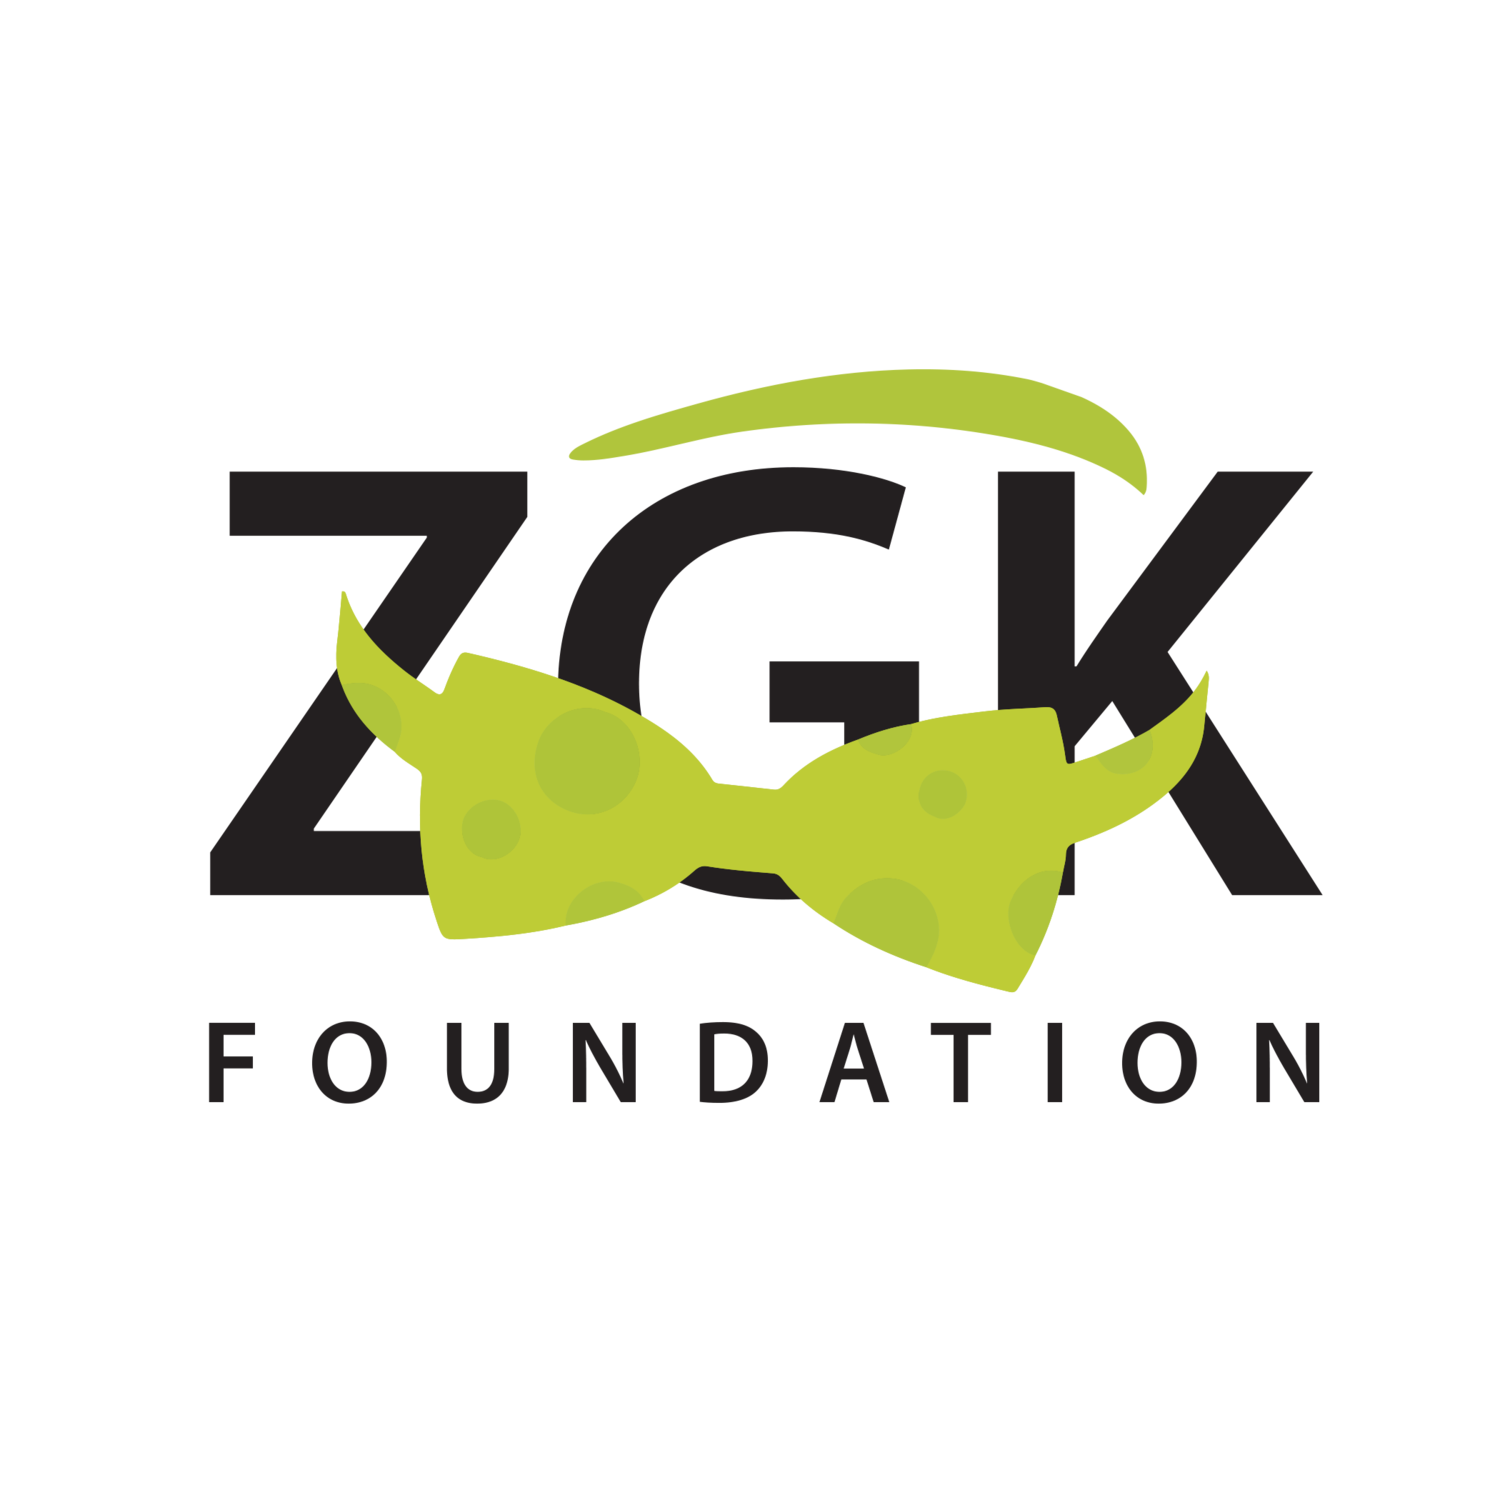 Zachary Gerald Knight Foundation, Inc., a 501(c)(3) non-profit organization